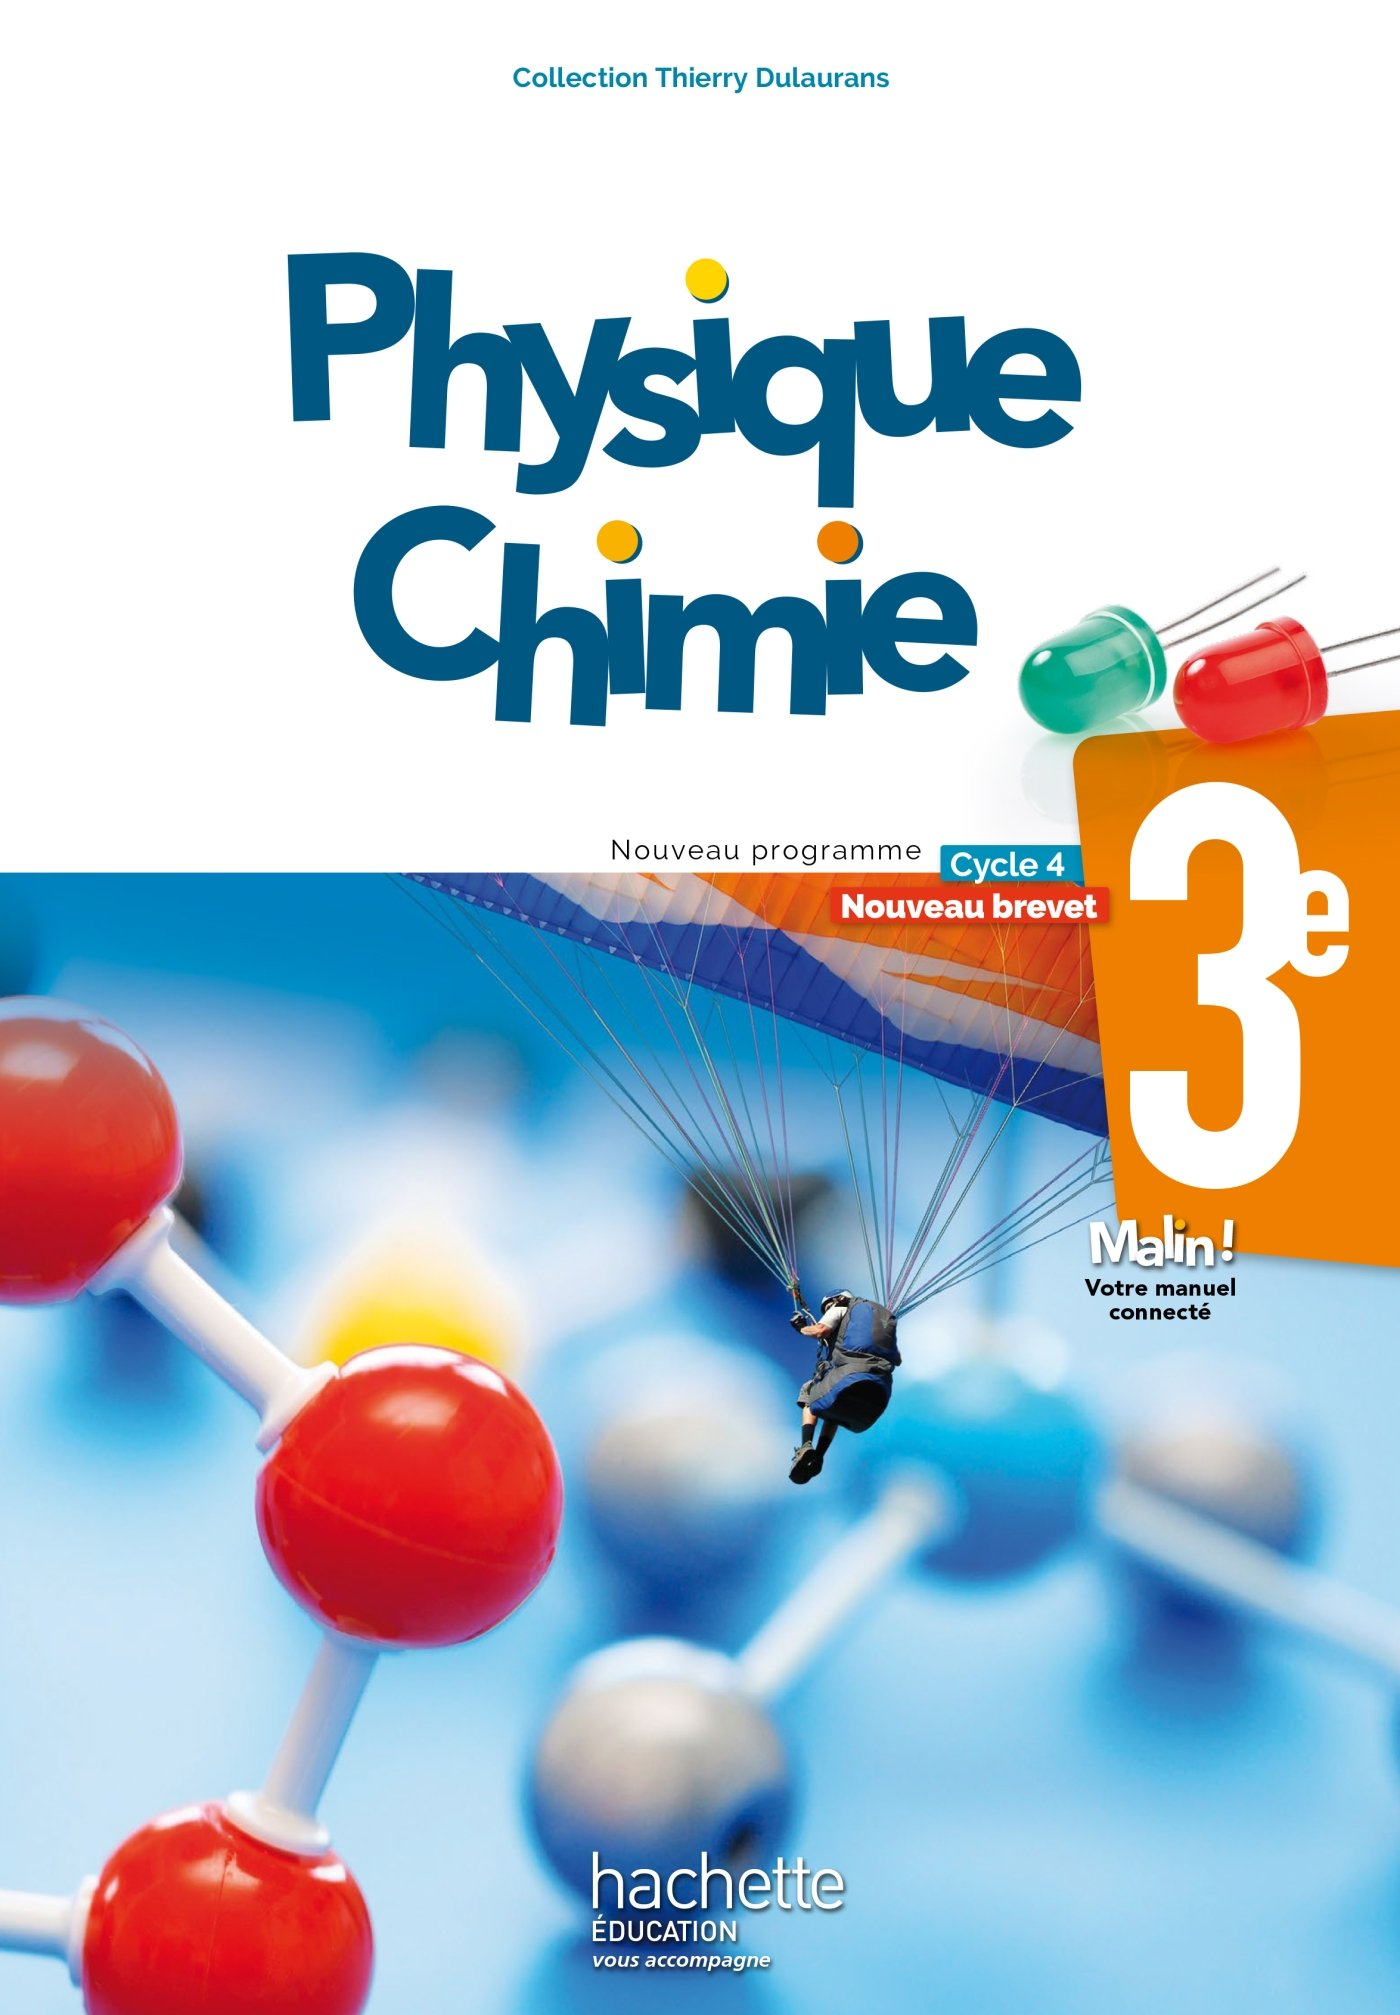 Physique Chimie Cycle 4 3e Livre Eleve Amazon Co Uk